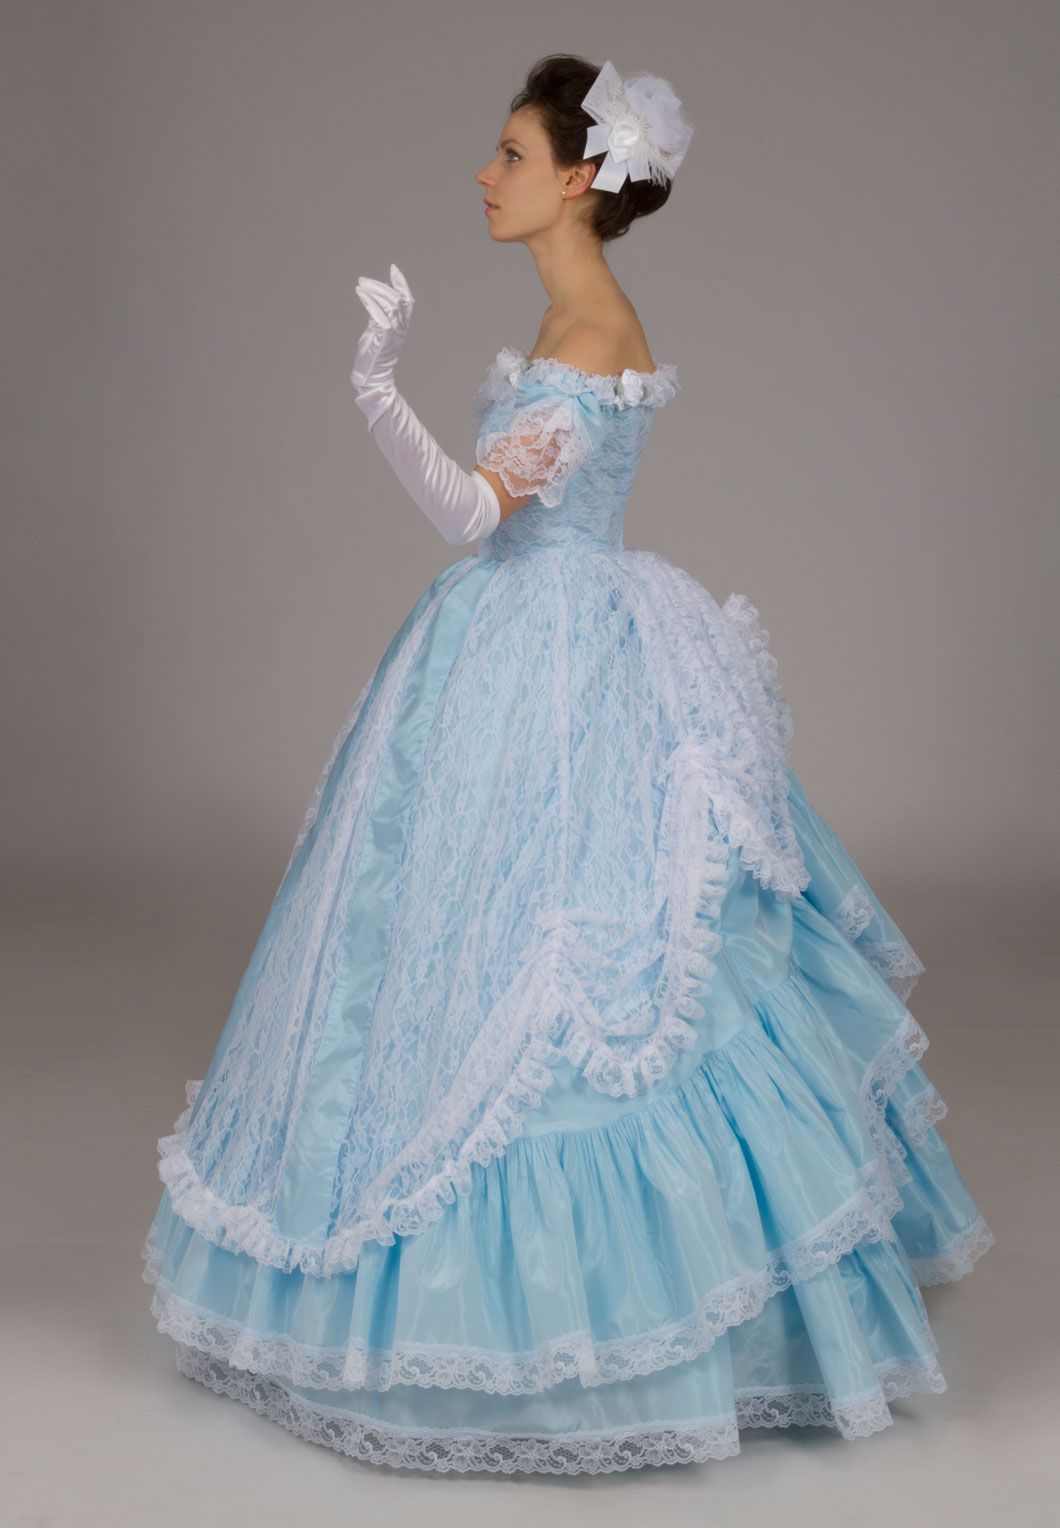 Victorian, Edwardian, and Civil War Ball Gowns | TRAJES DE BAILE ...